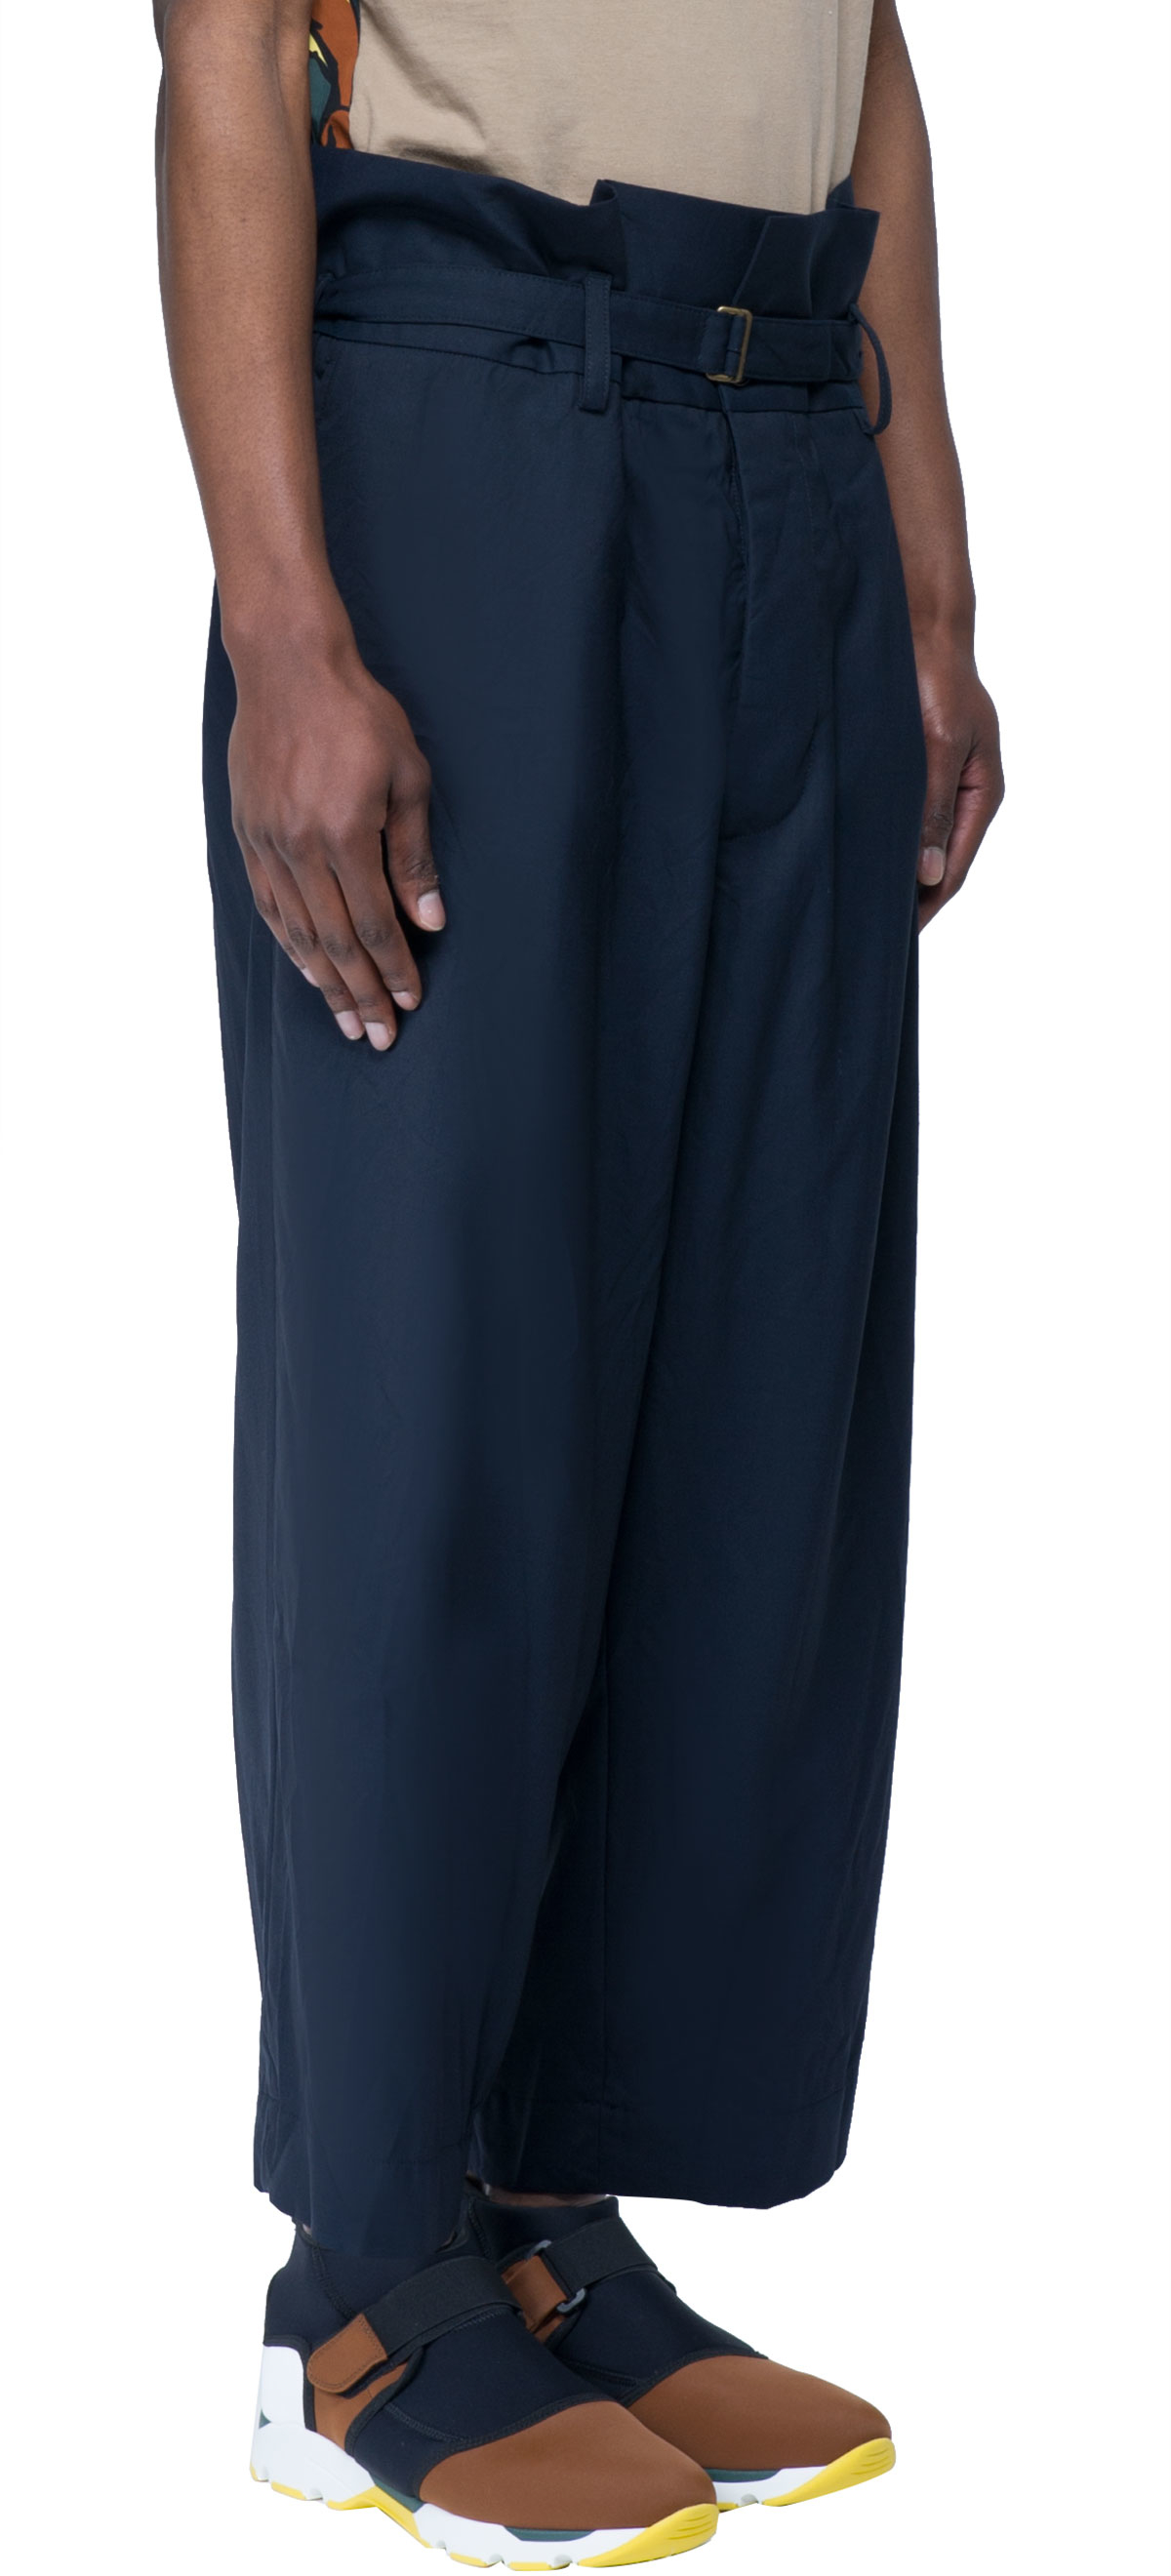 Marni Trousers With Belt In Blue For Men Lyst